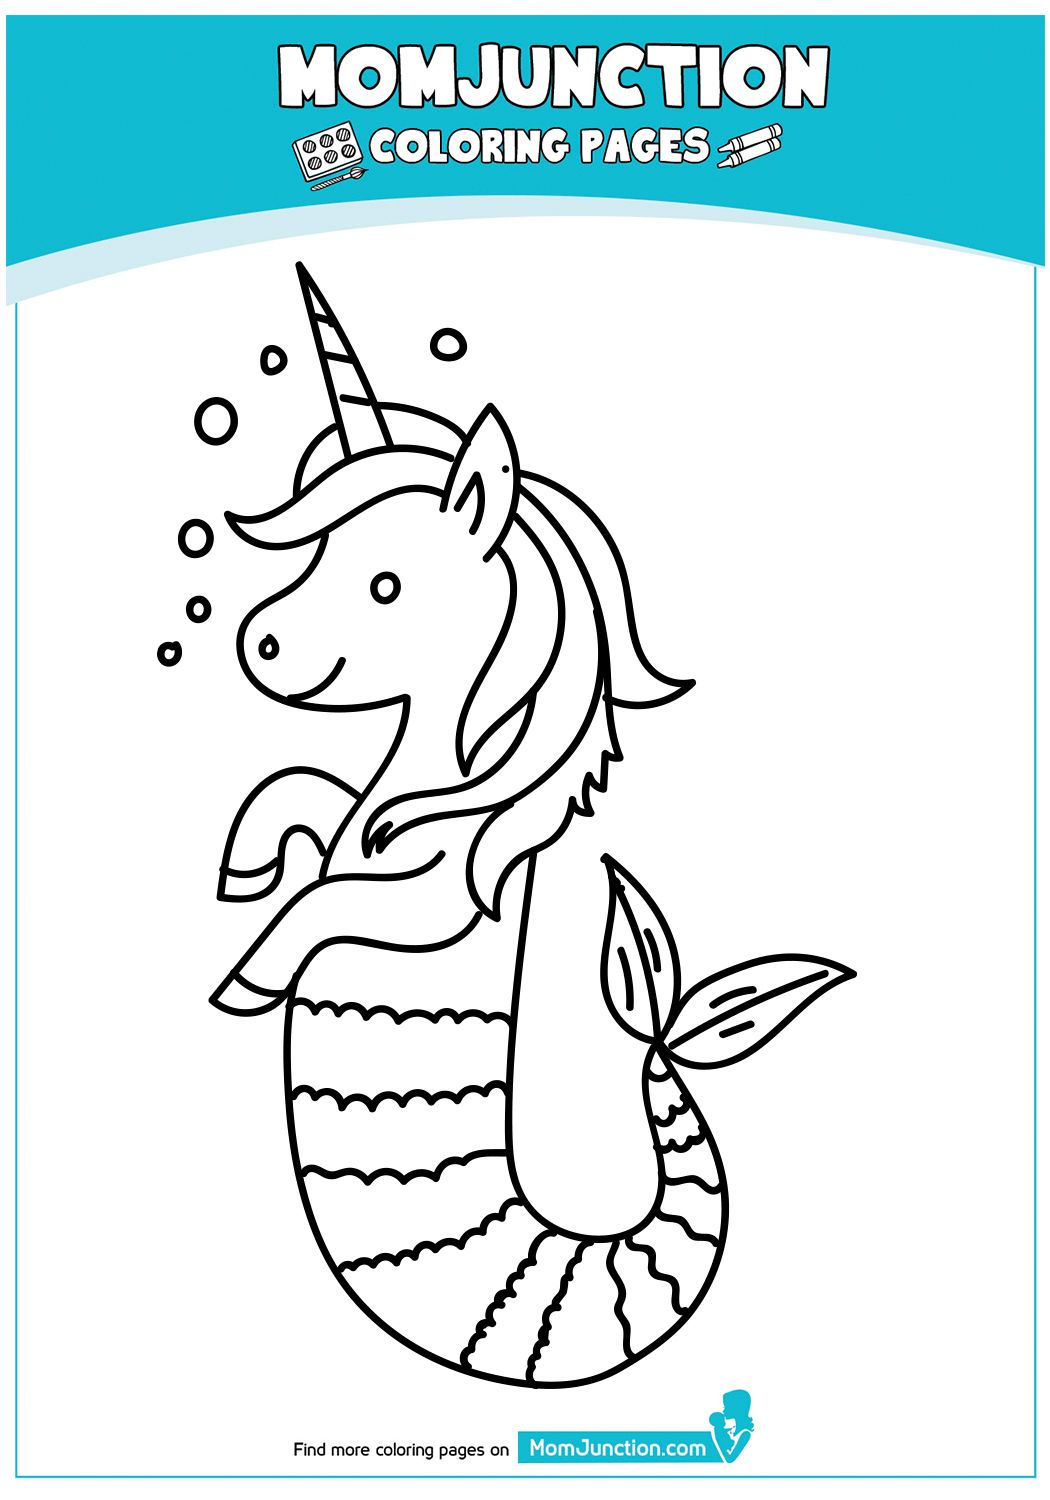 Print Coloring Image Momjunction Unicorn Coloring Pages